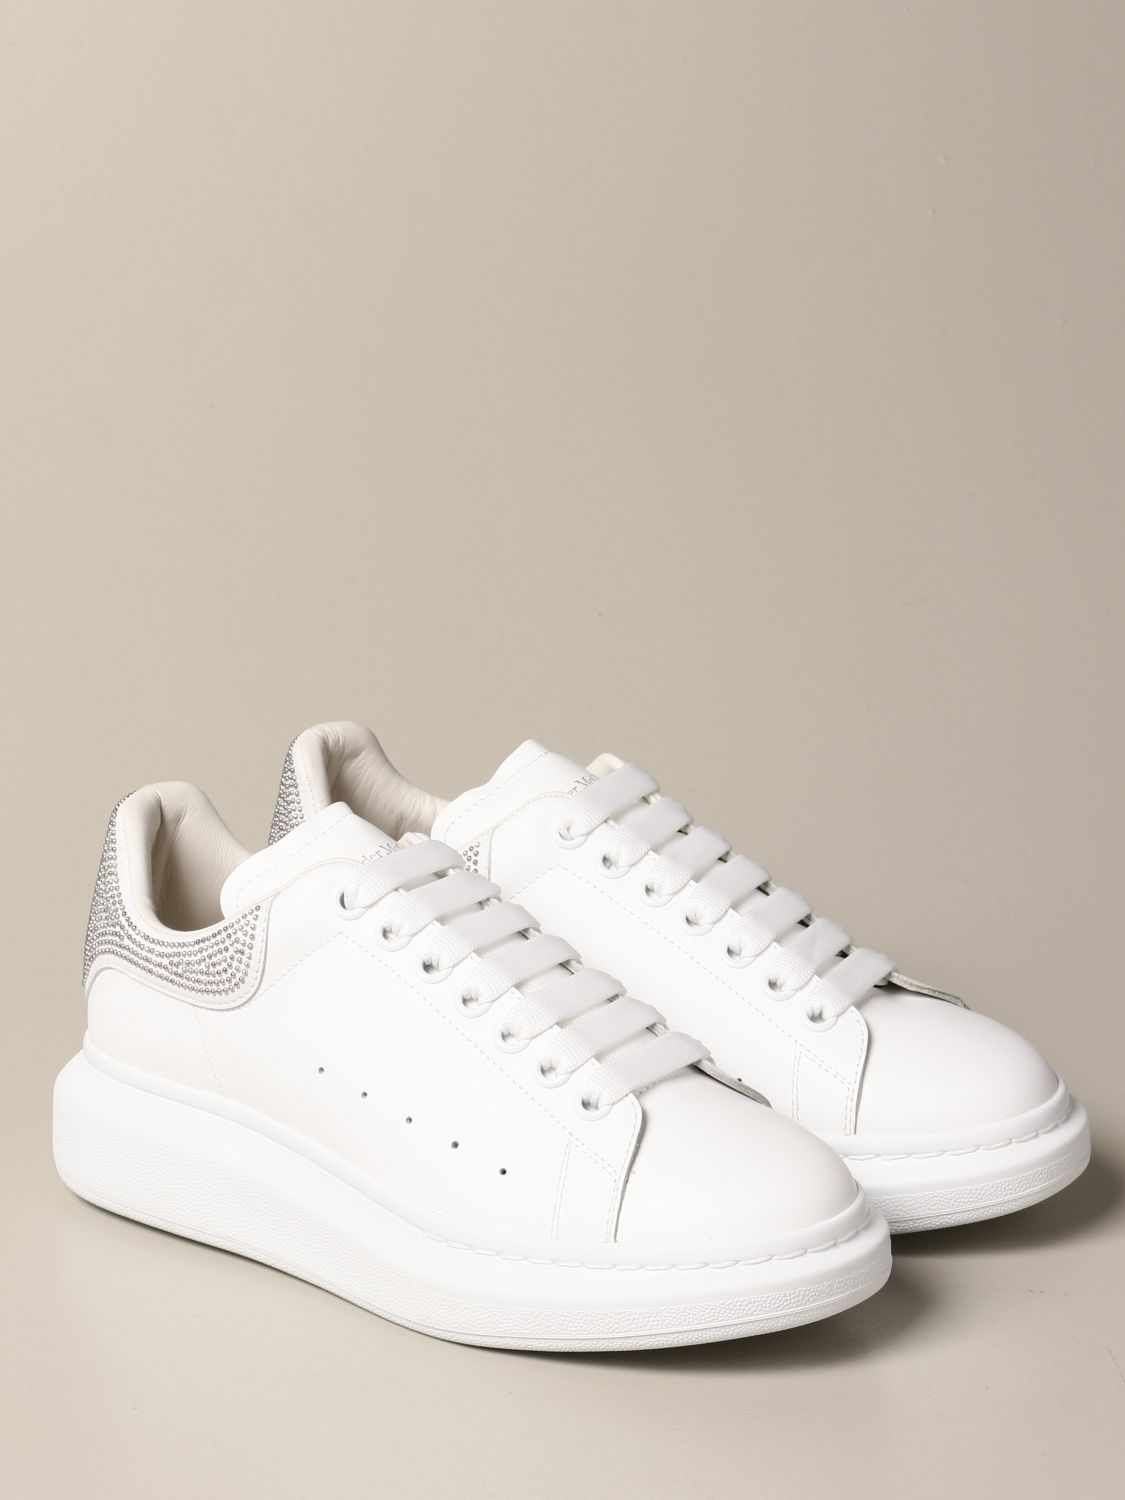 Sneakers Alexander Mcqueen: Alexander McQueen sneakers in leather with micro studs white 2